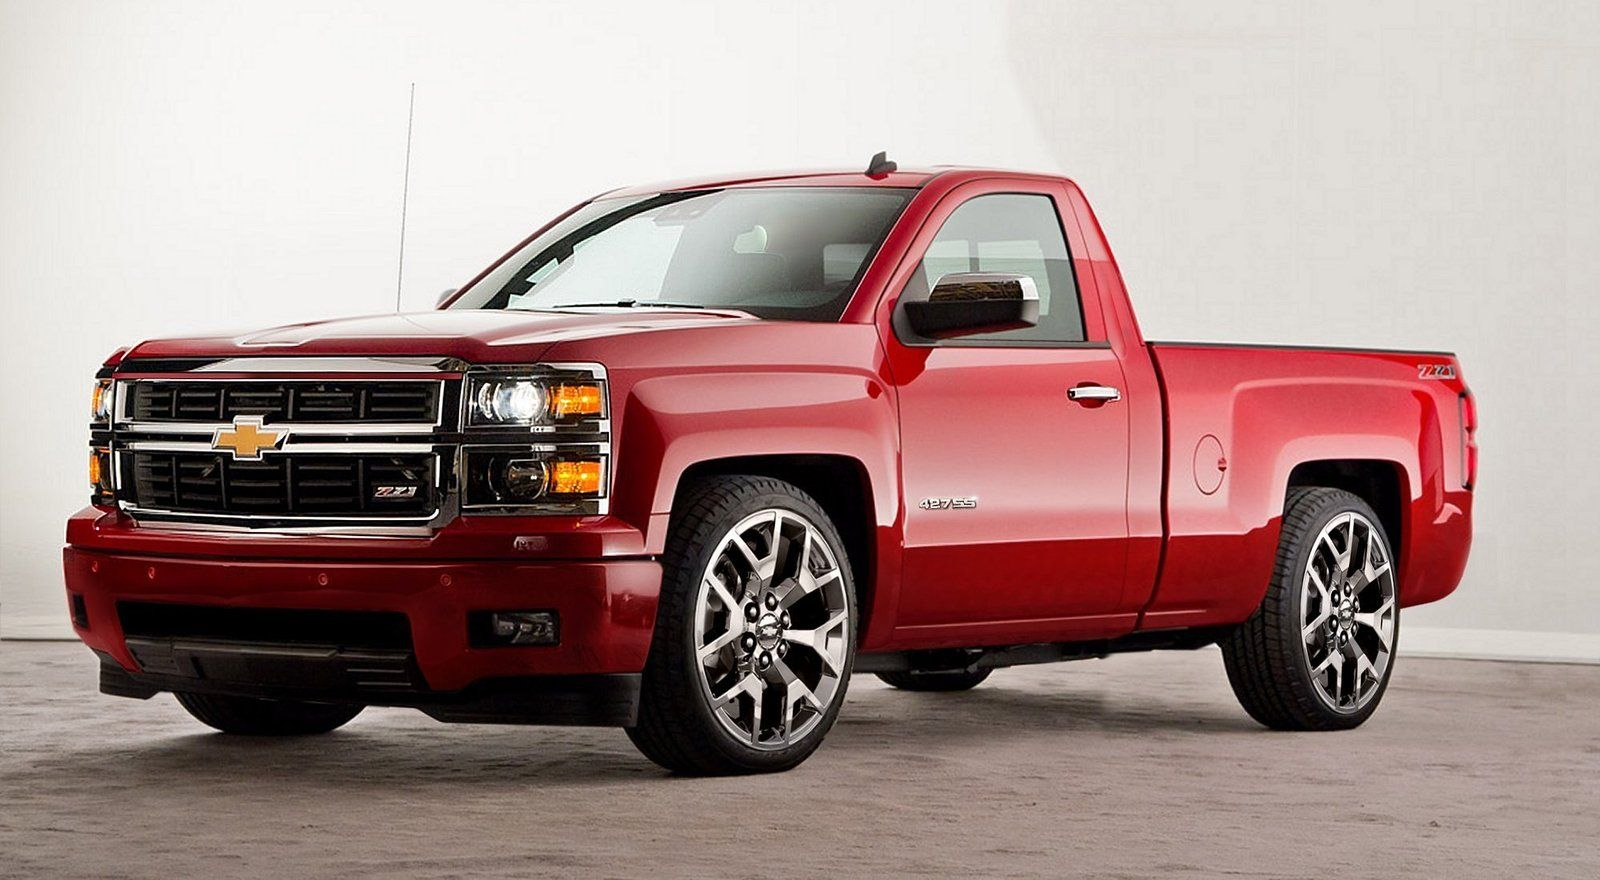 All Types single cab silverado ss : 2014 #Chevy #Silverado | Motorsports | Pinterest | 2014 chevy ...